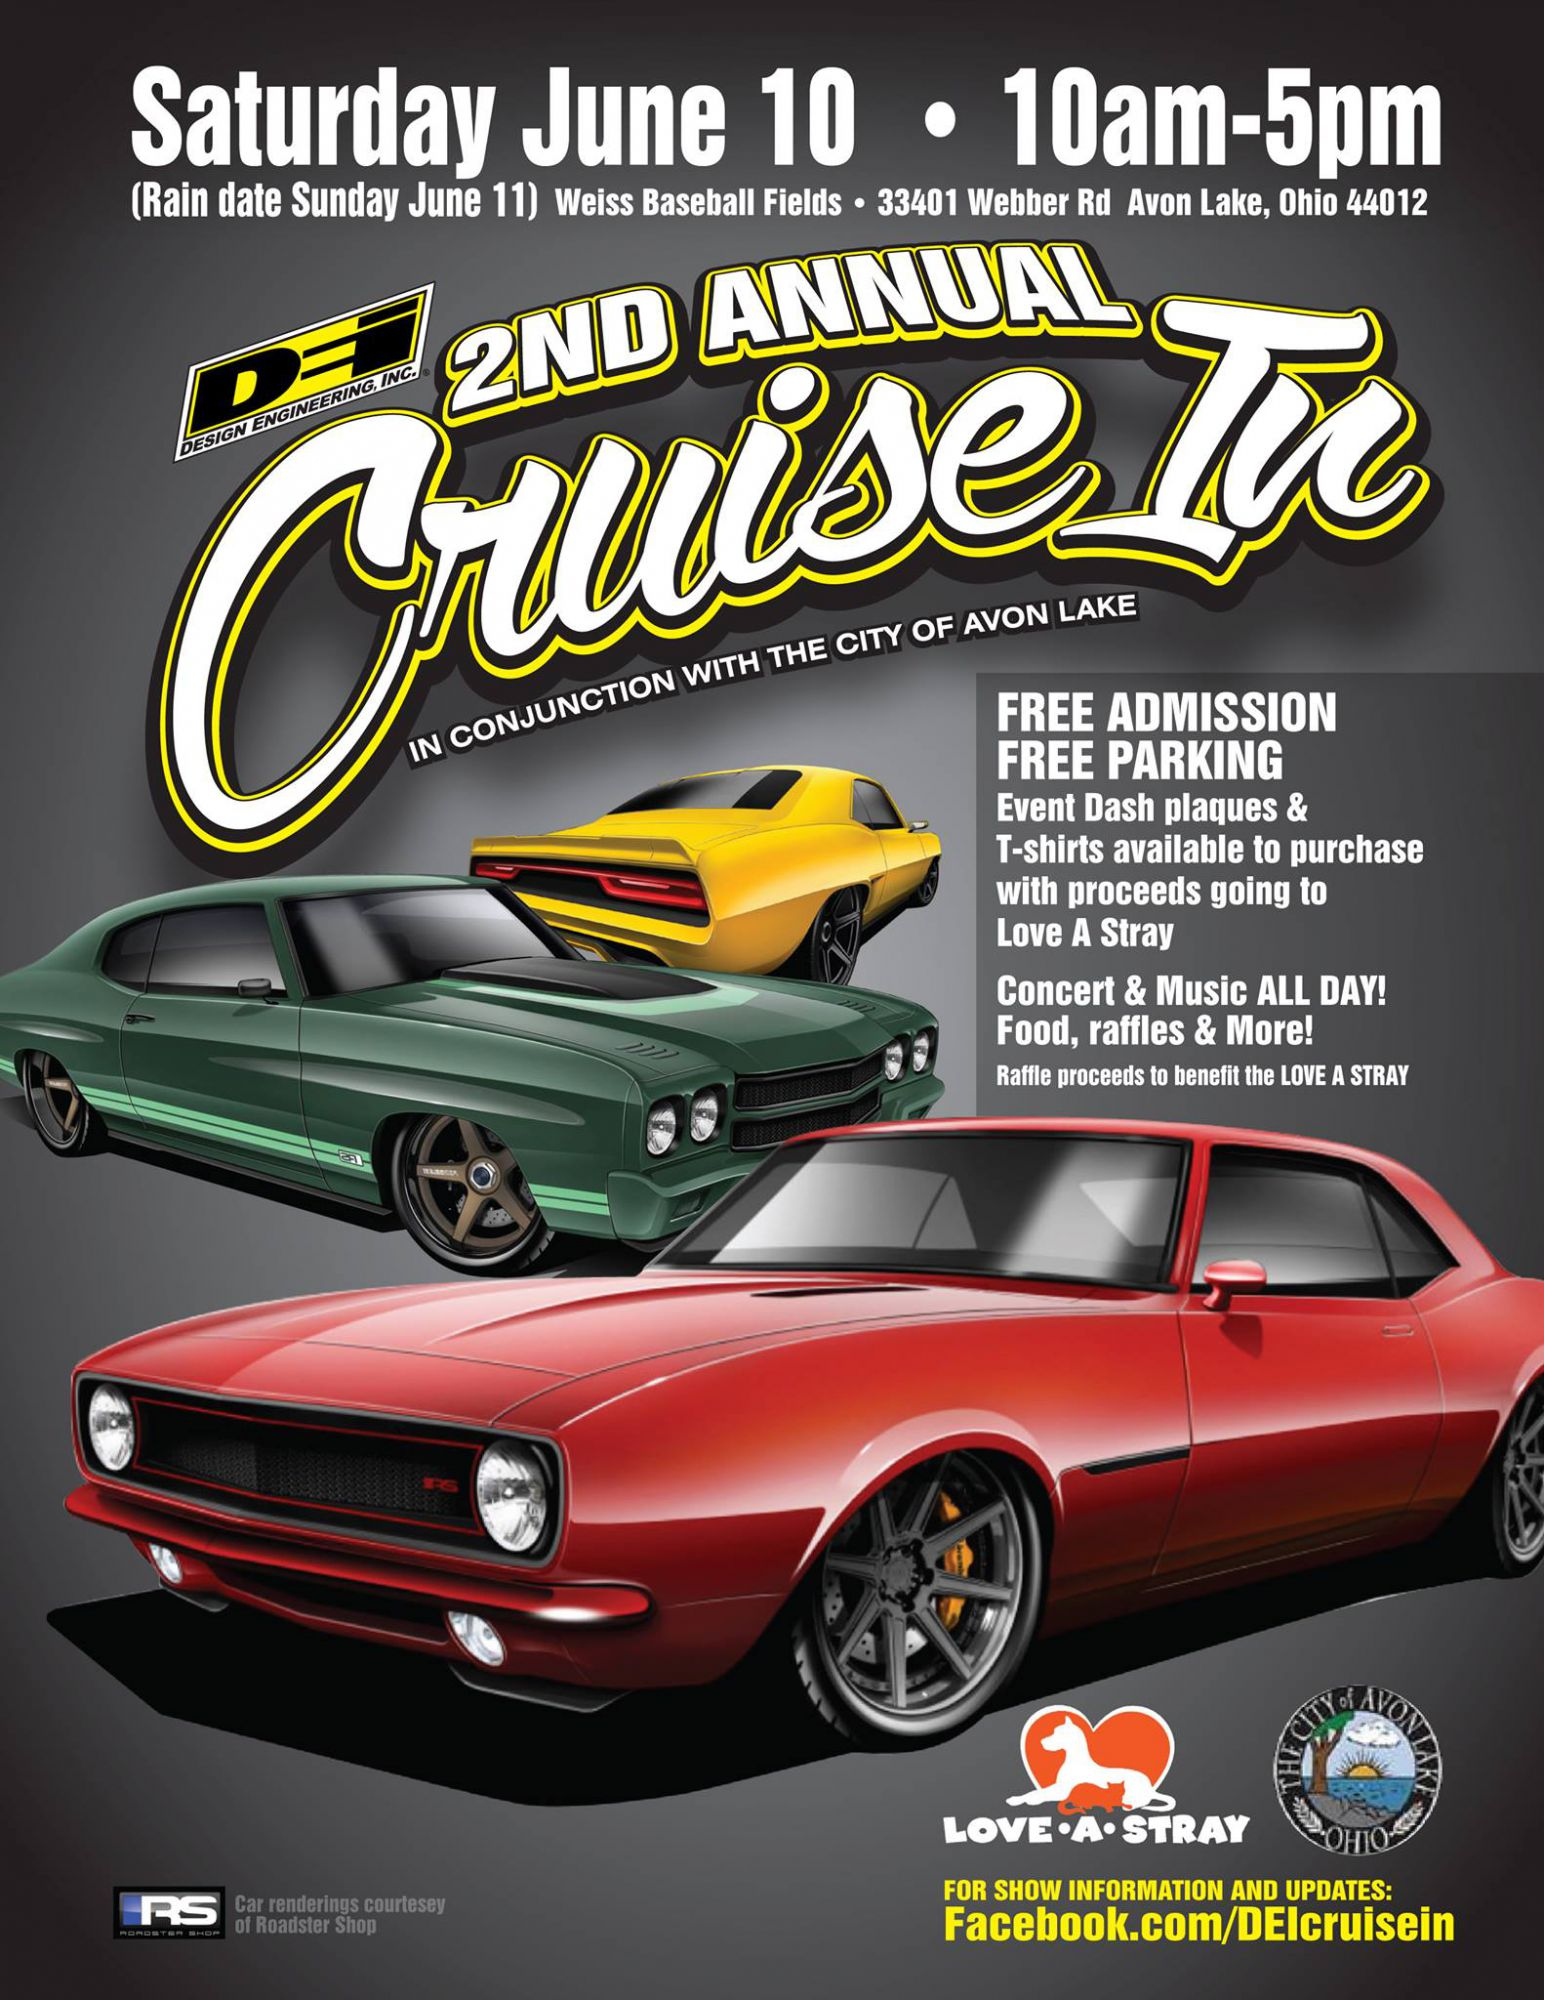 2nd Annual Cruise In